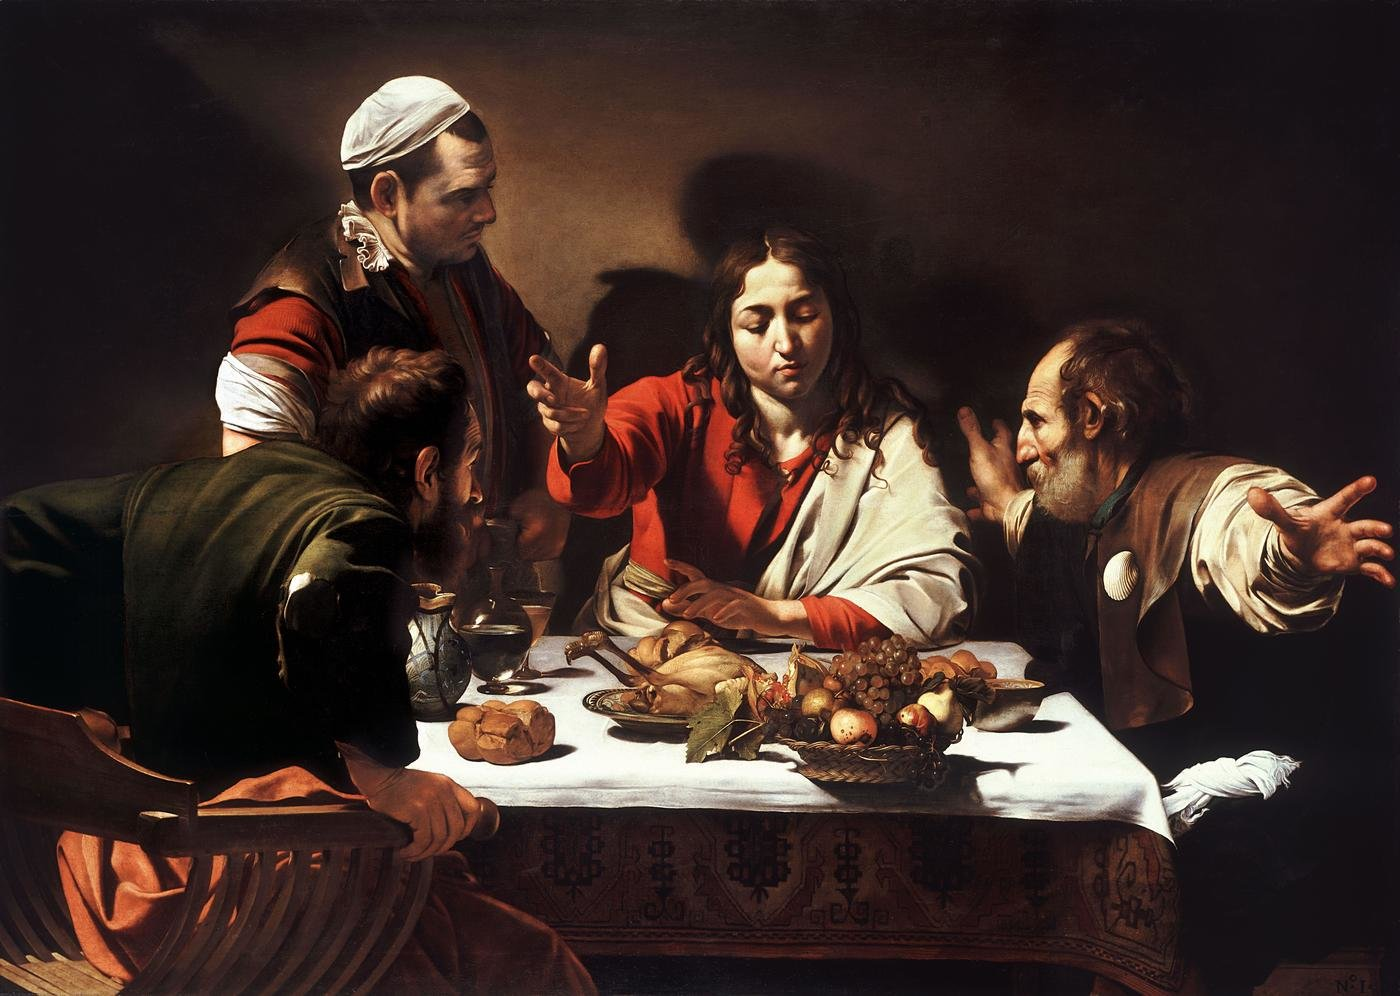 Caravaggio background